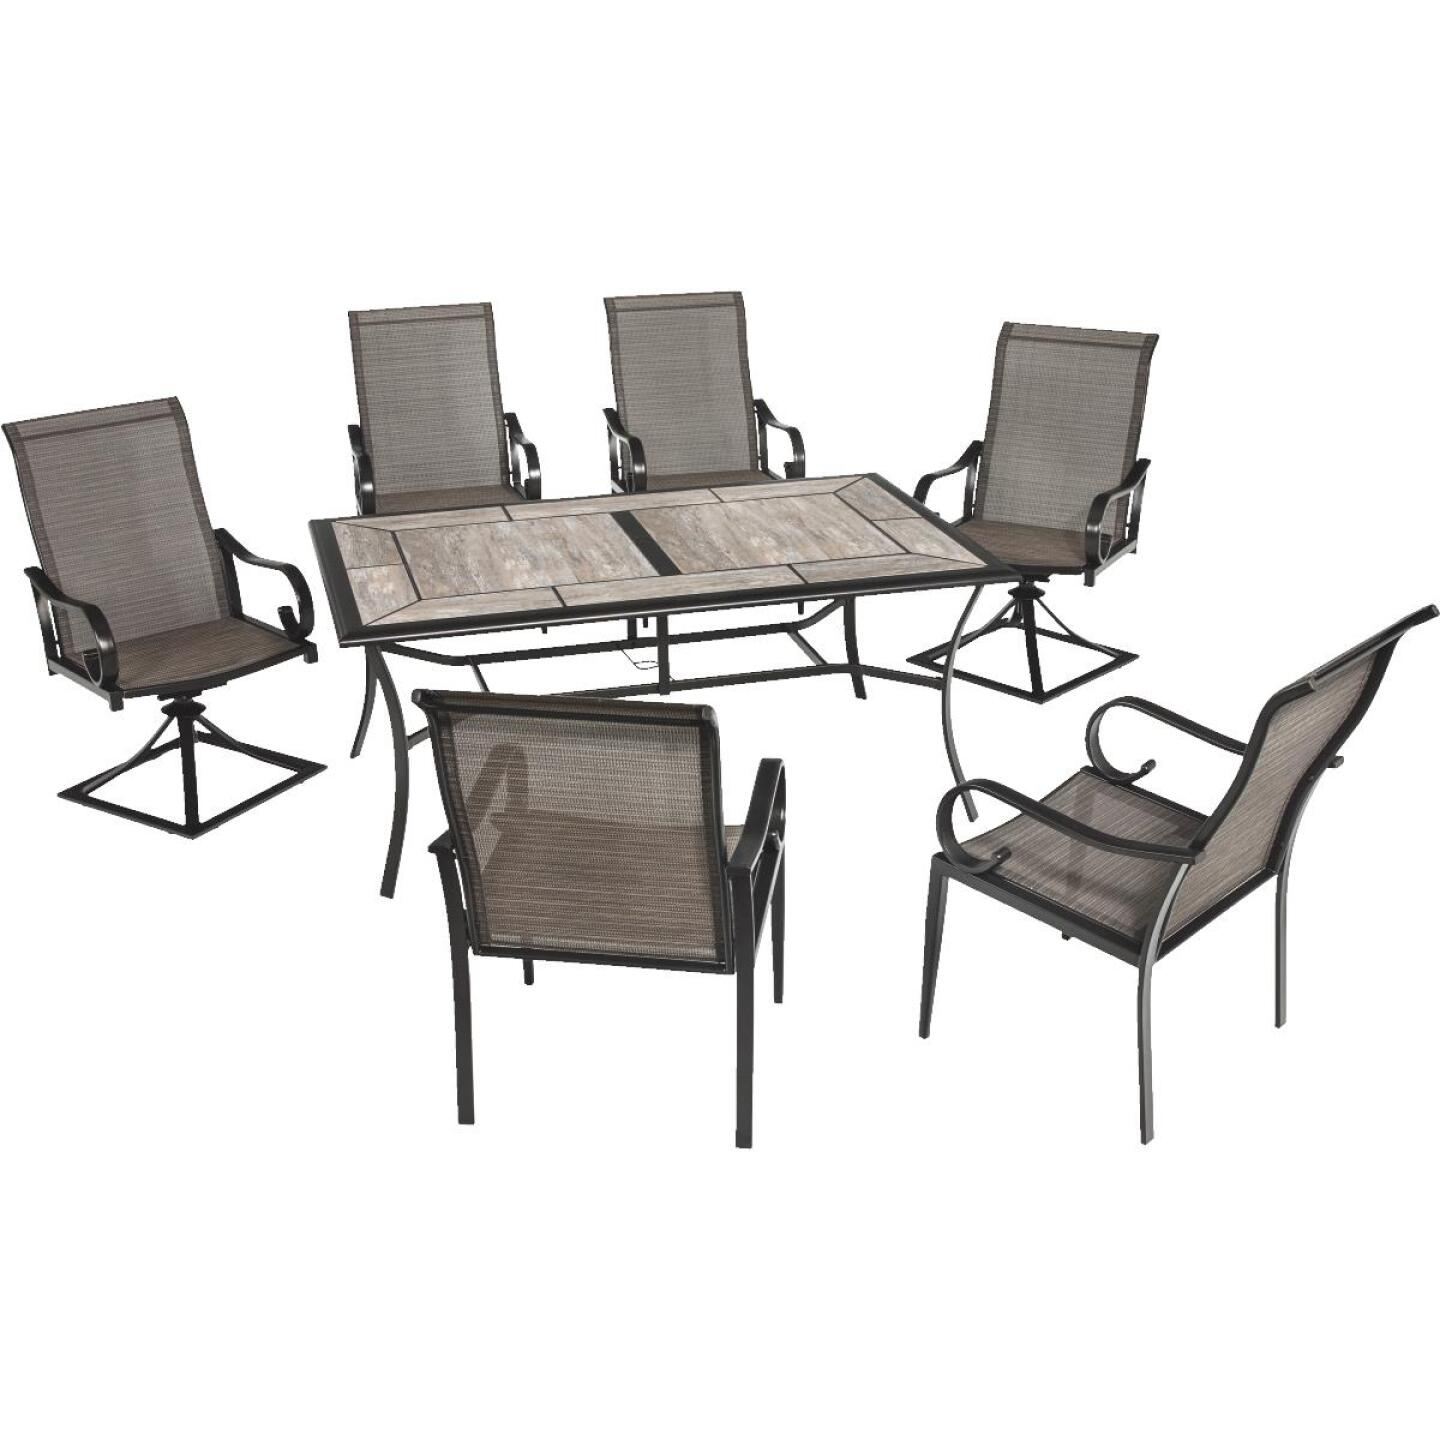 Outdoor Expressions Berkshire 7-Piece Dining Set Image 336